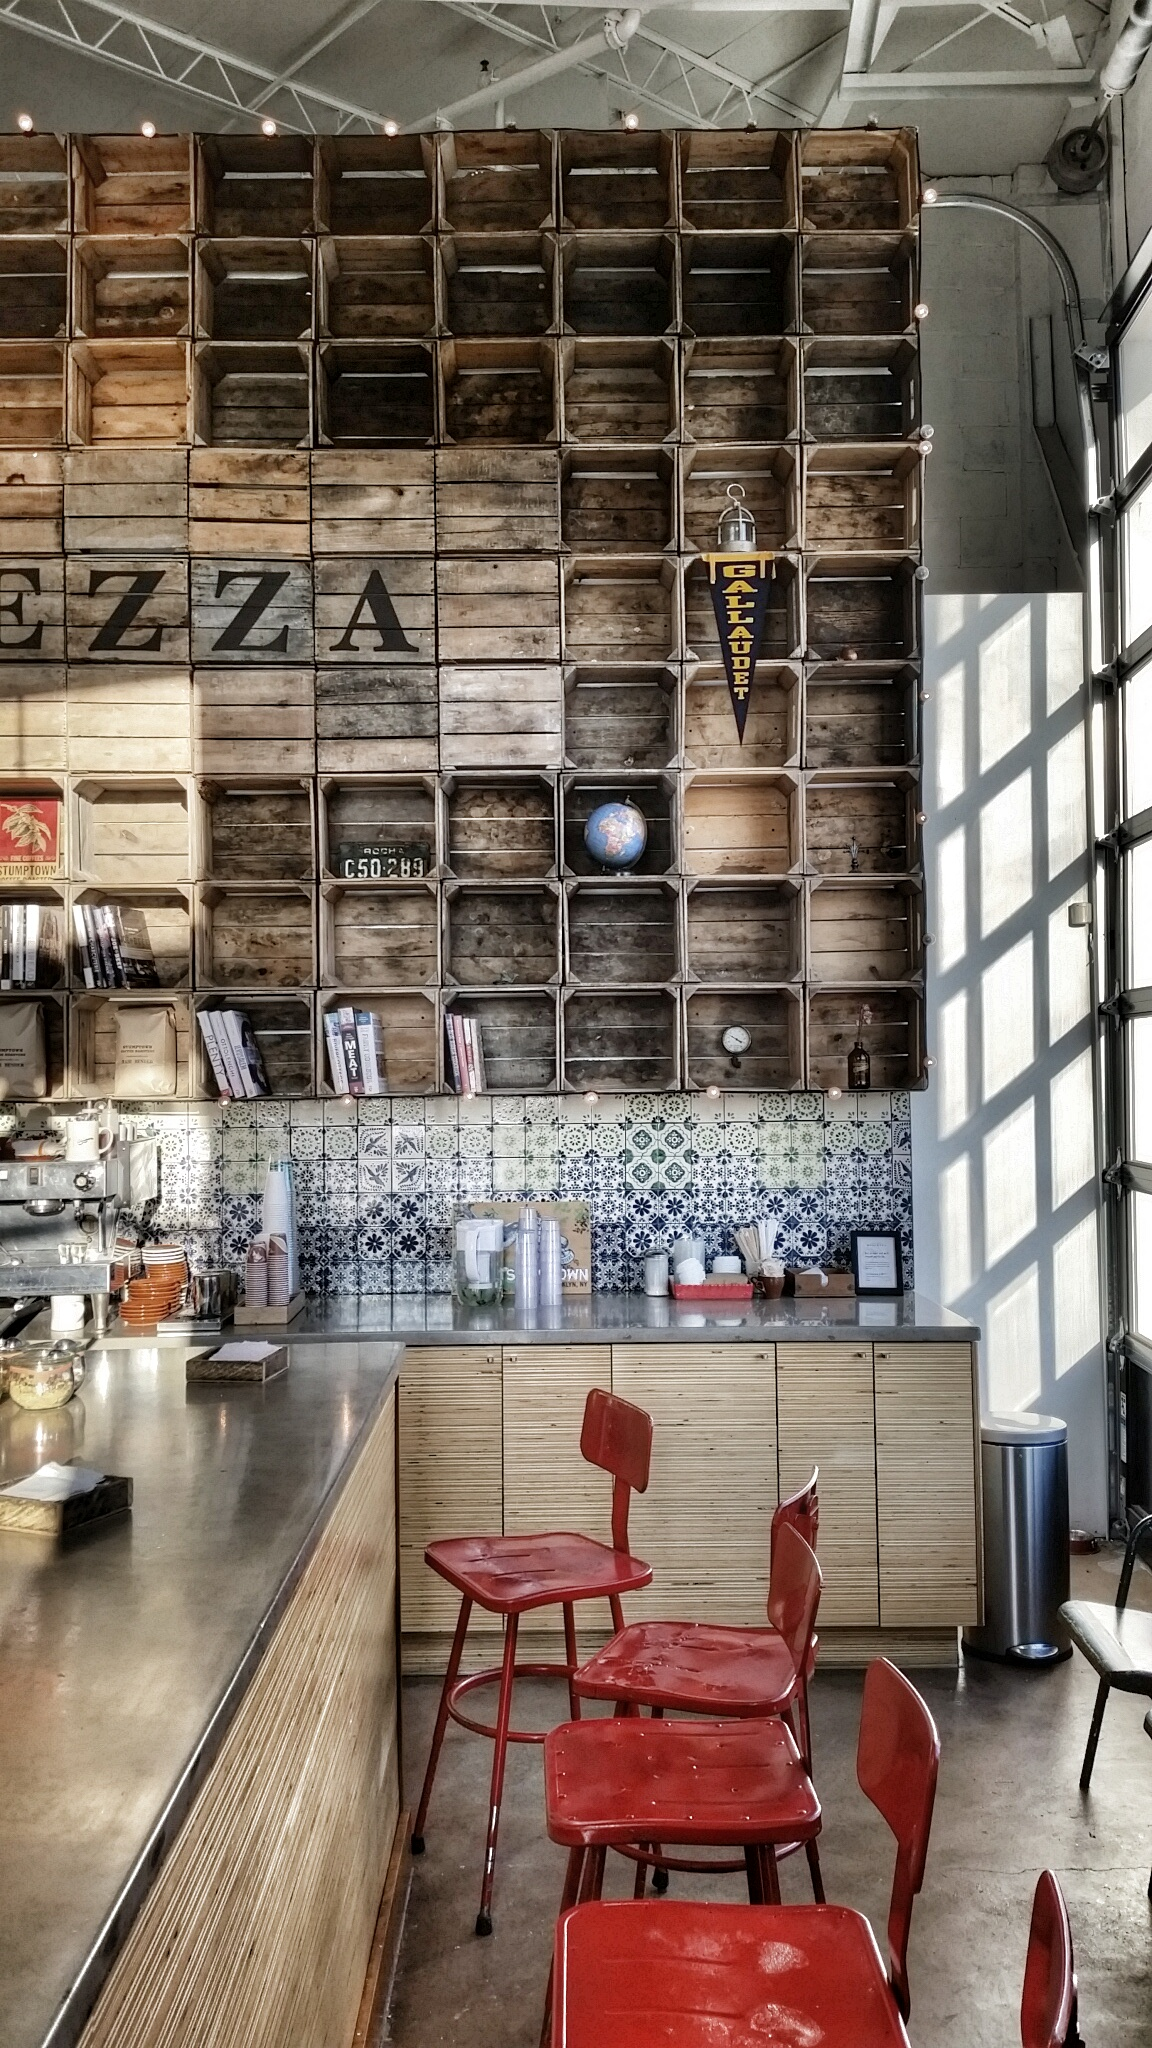 The Instagram-worthy interior of Dolcezza Factory - stop by for coffee or gelato and bask in the warm, golden light...